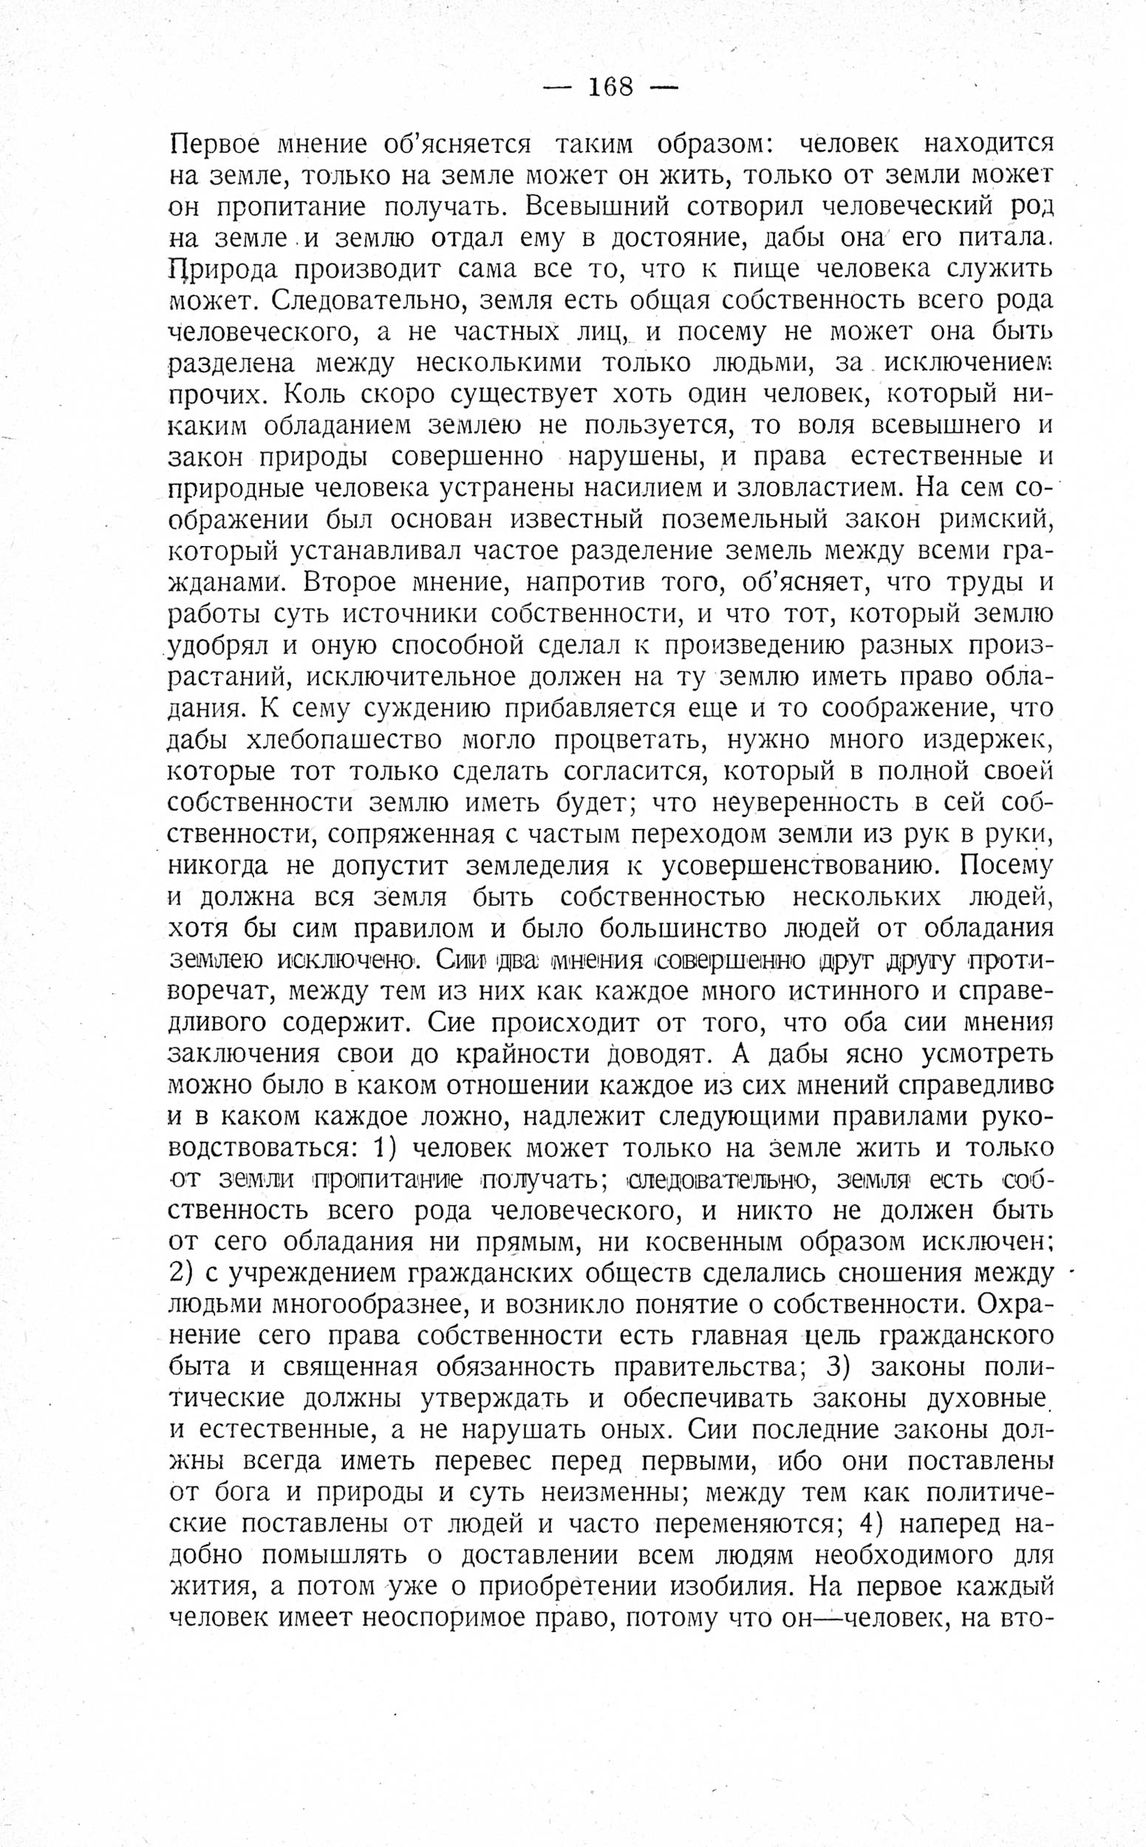 http://elib.shpl.ru/pages/625751/zooms/7